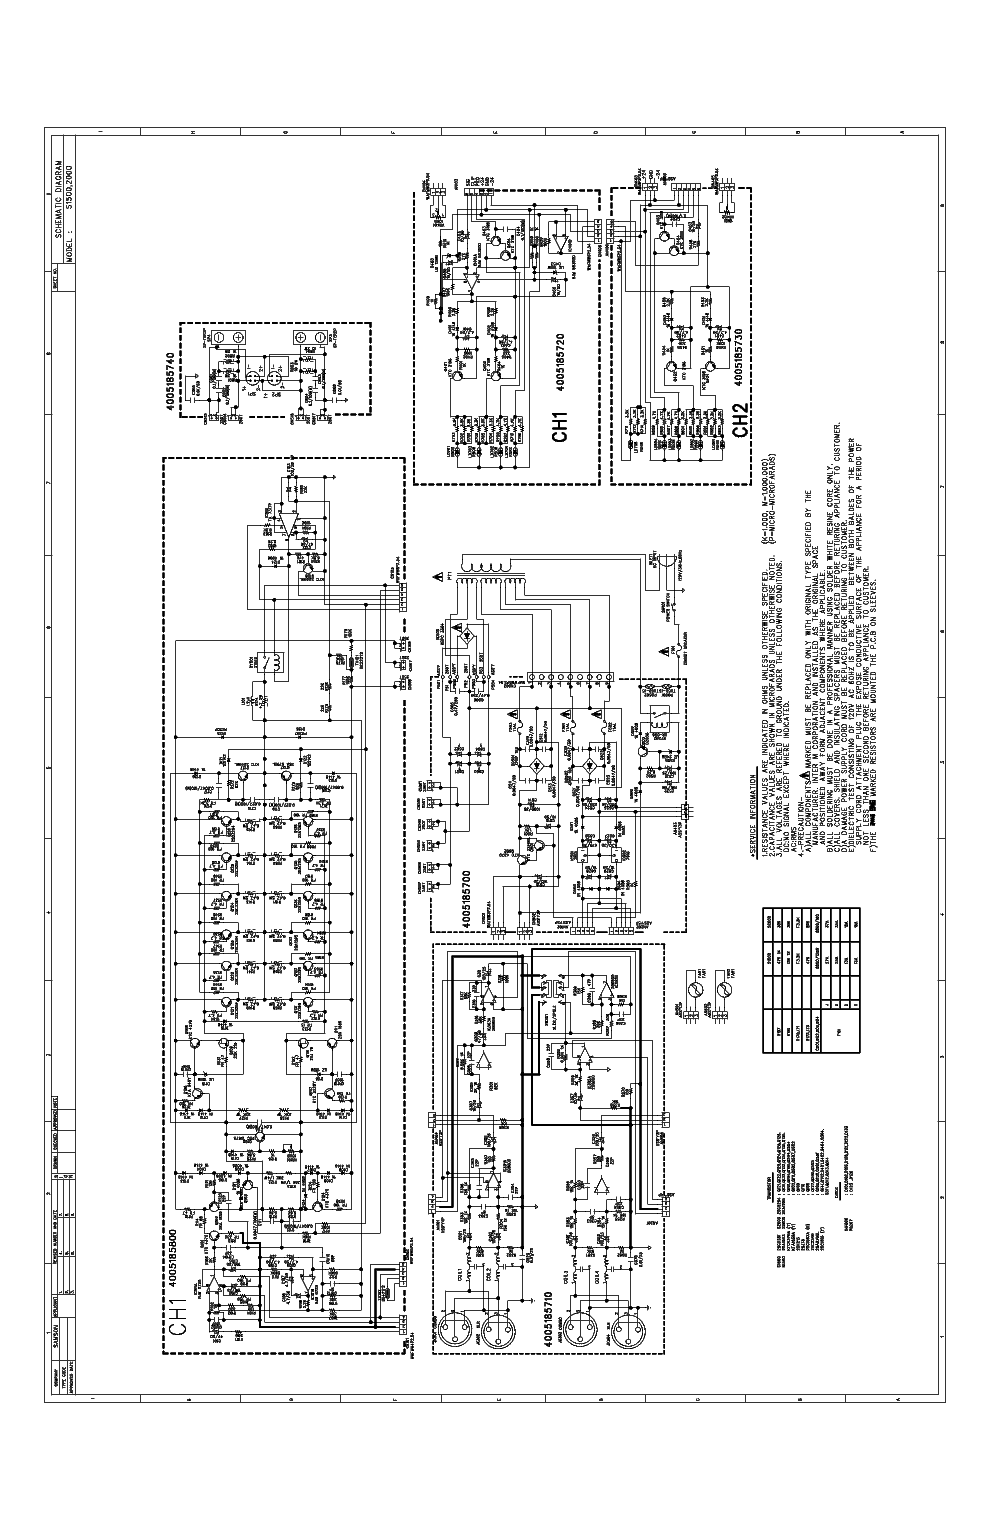 84 vw rabbit fuse box power  diagrams  auto fuse box diagram